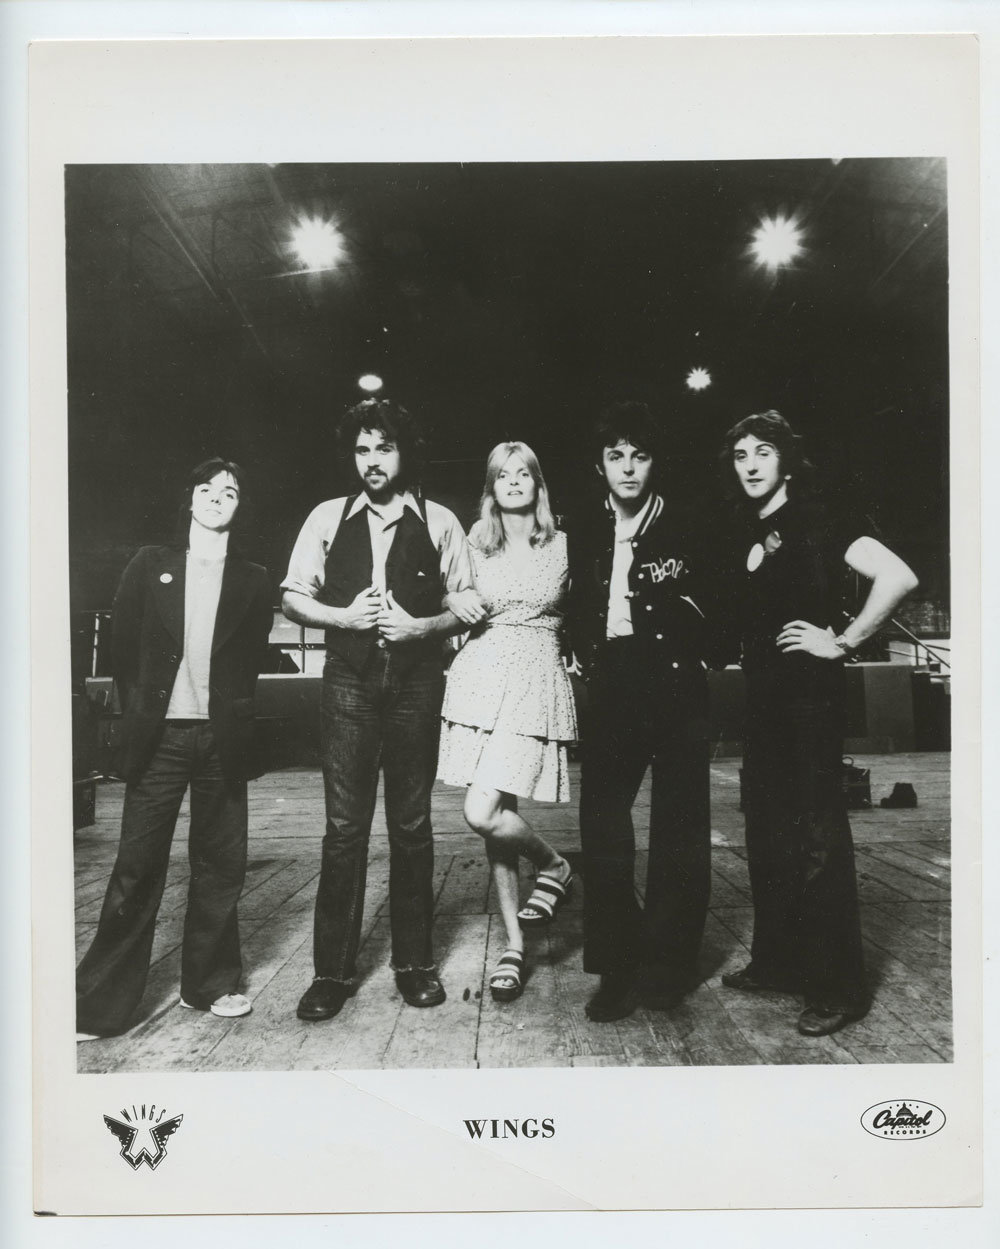 Paul McCartney and Wings Photo 1971 Publicity Promo Capital Records